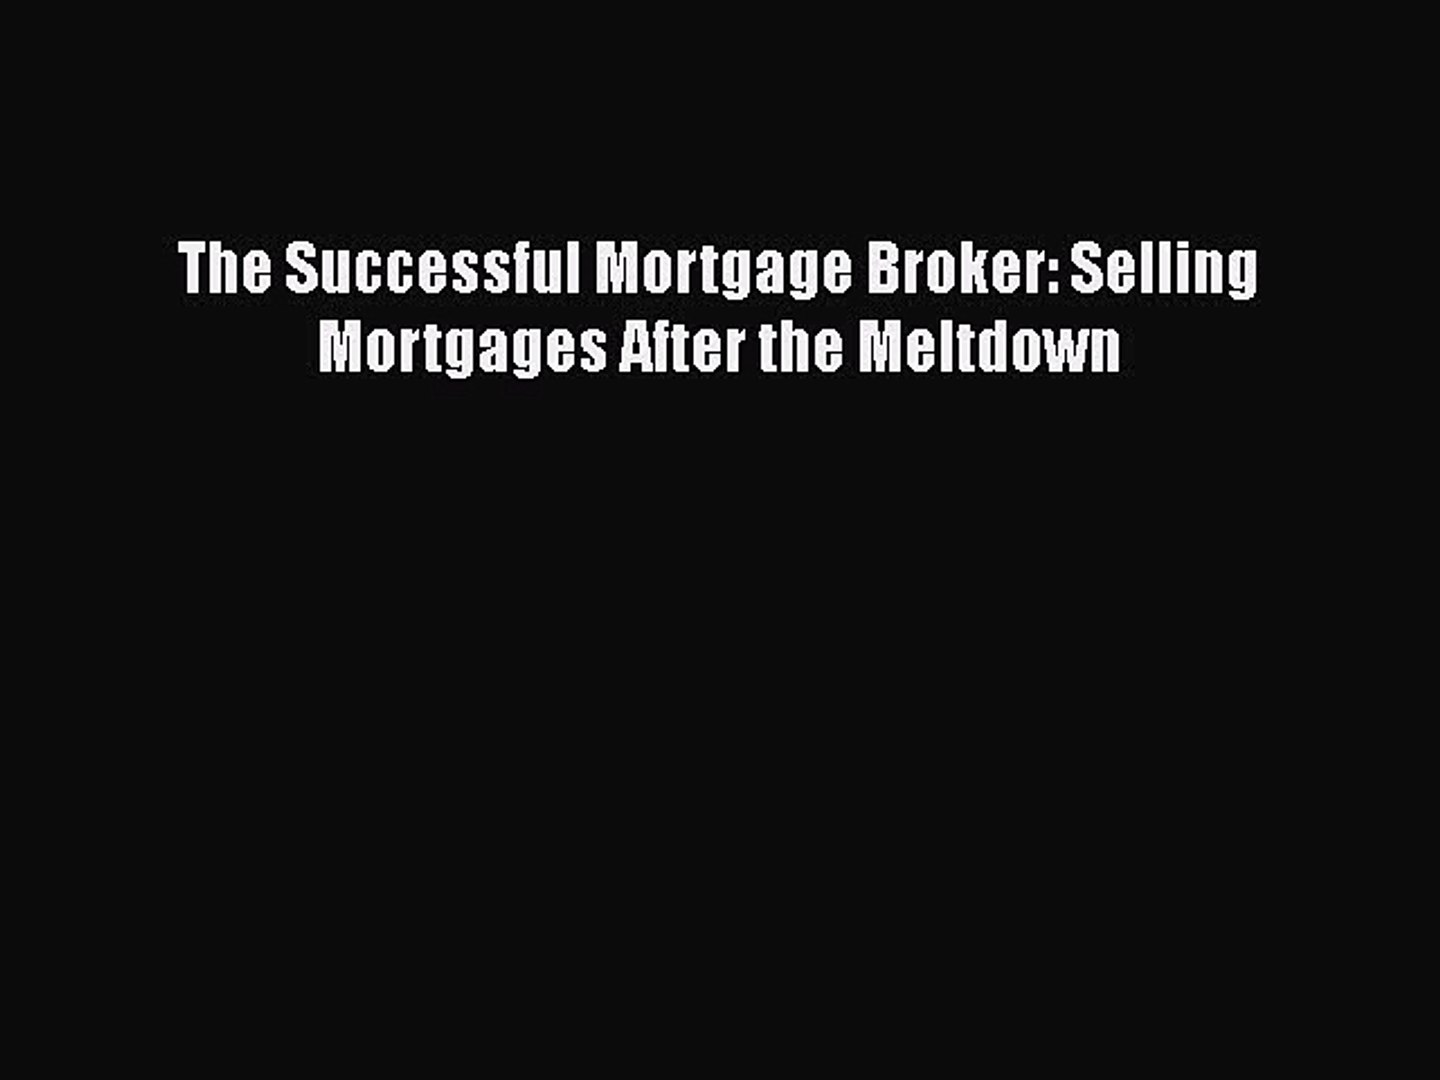 PDF The Successful Mortgage Broker: Selling Mortgages After the Meltdown  EBook